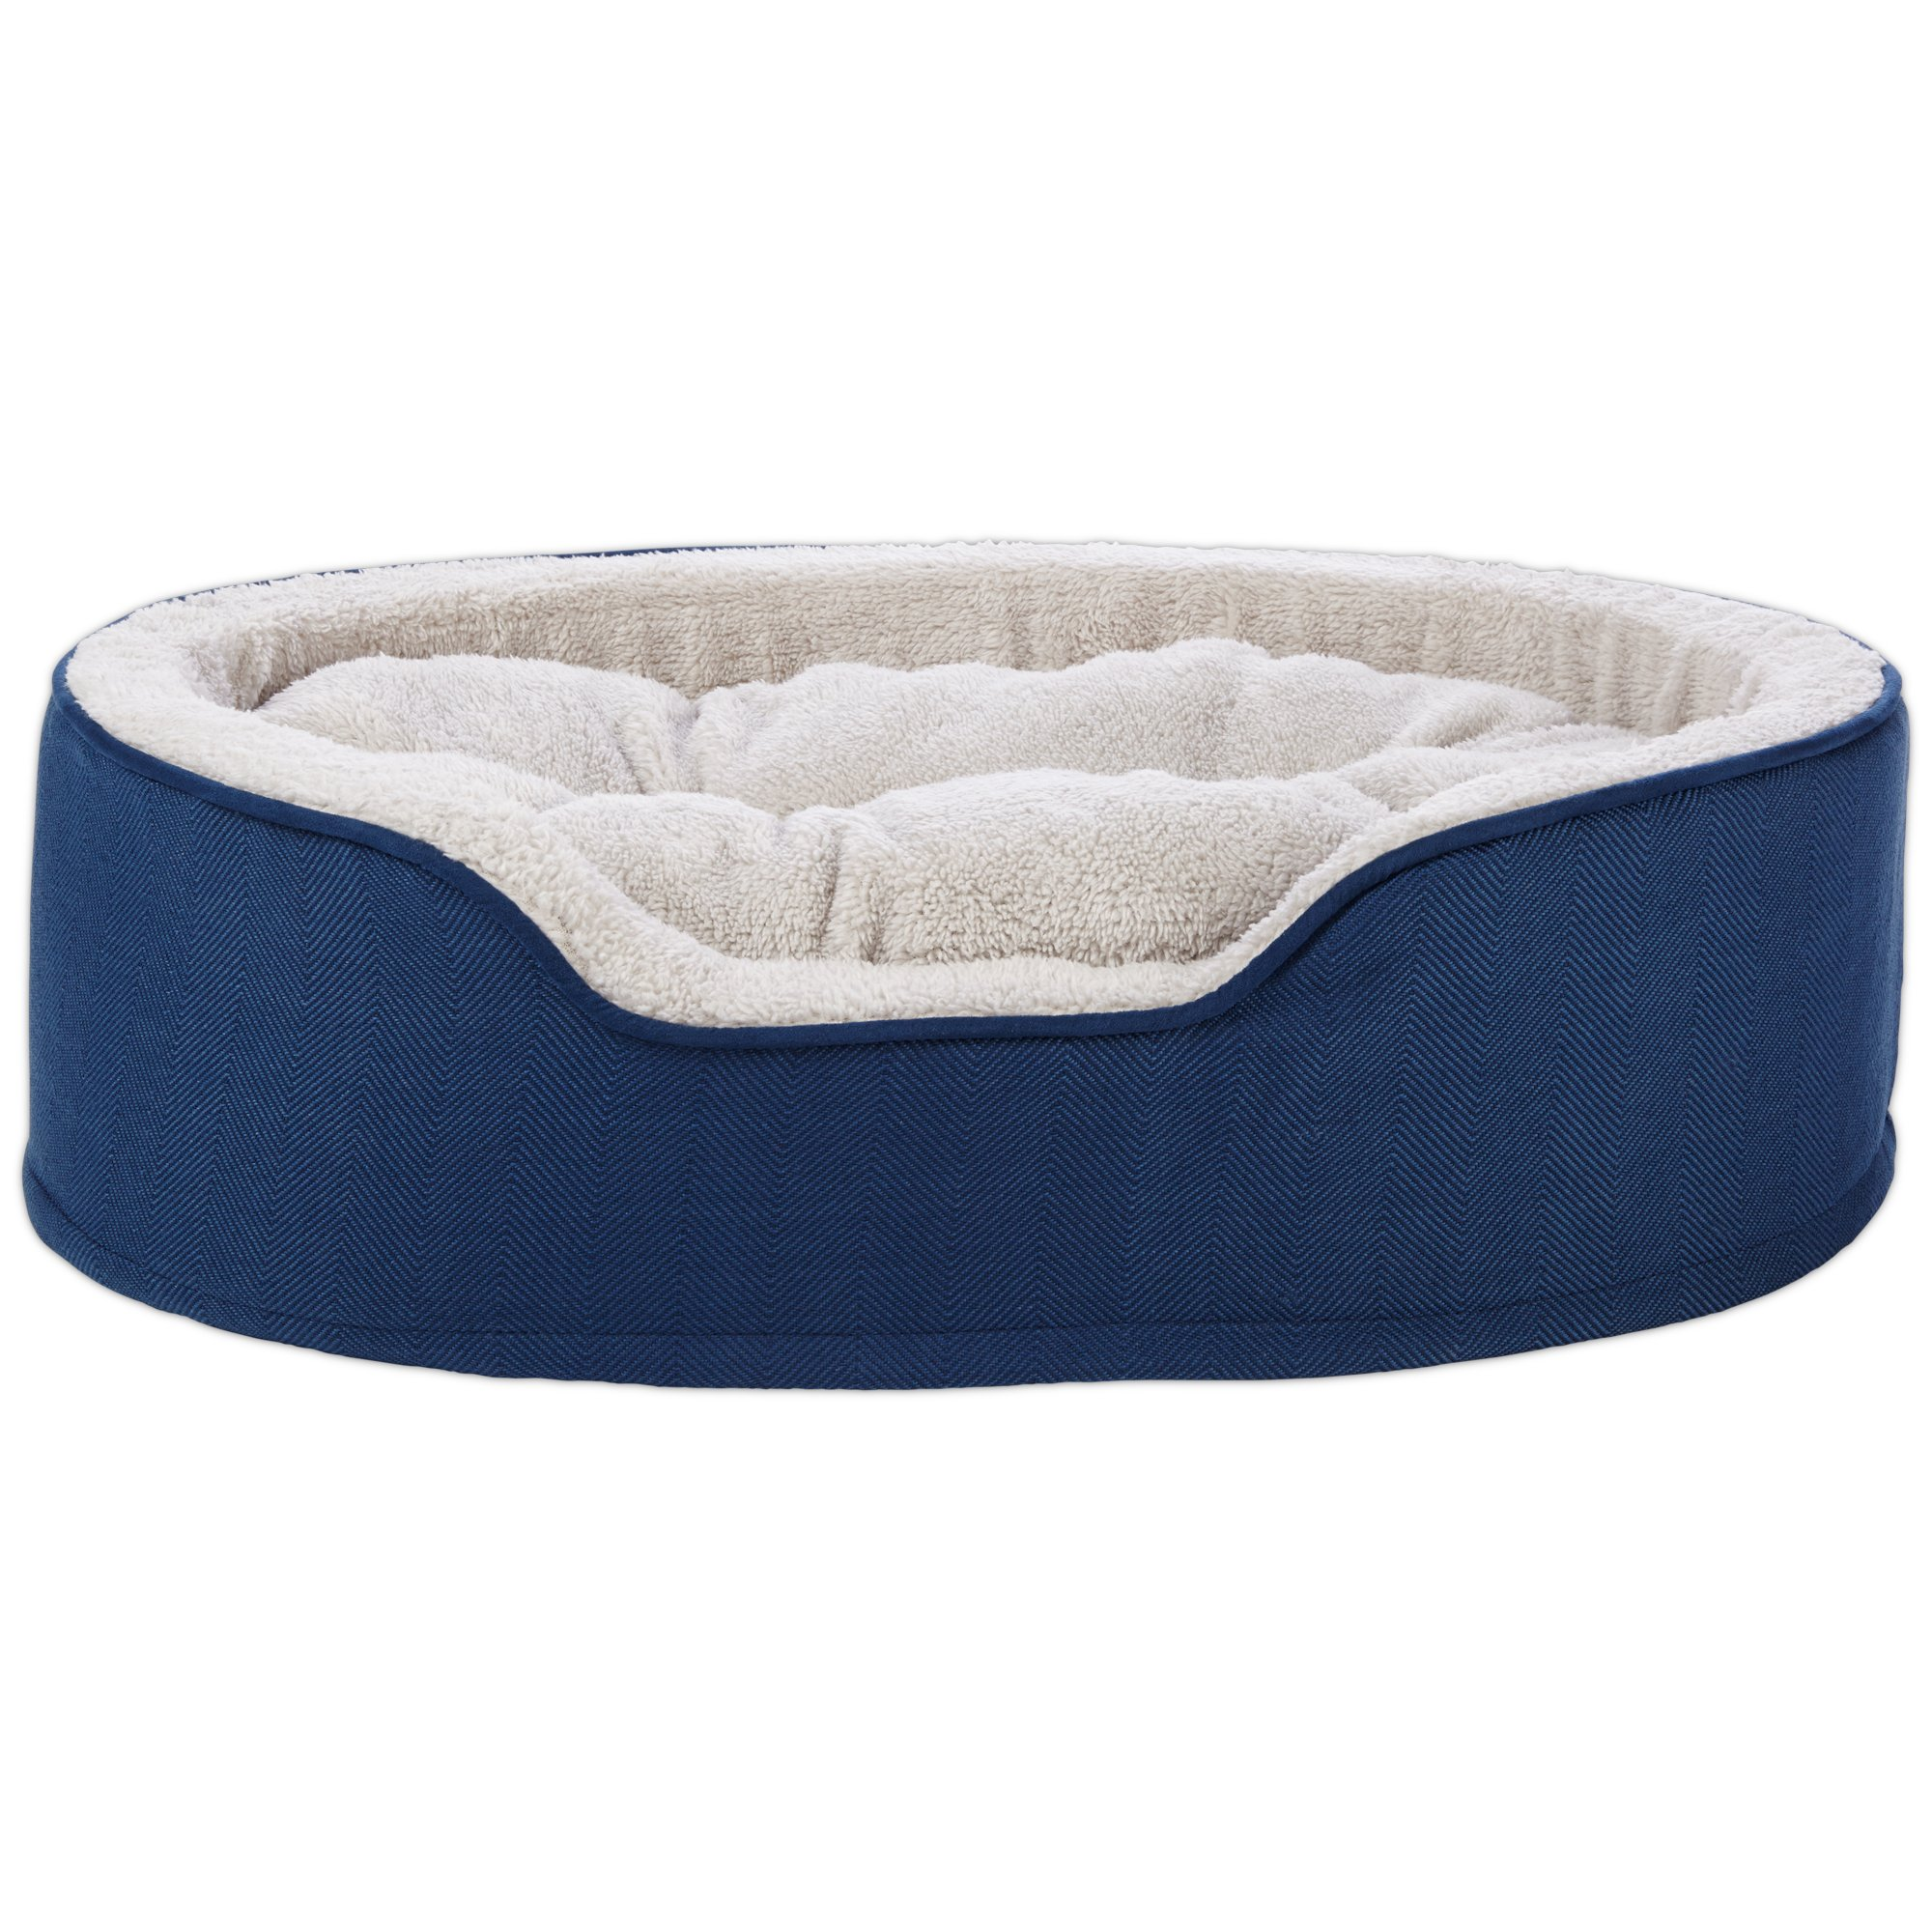 rest bed pet supplies free product foam beds beautyrest simmons shipping today dog overstock memory orthopedic colossal